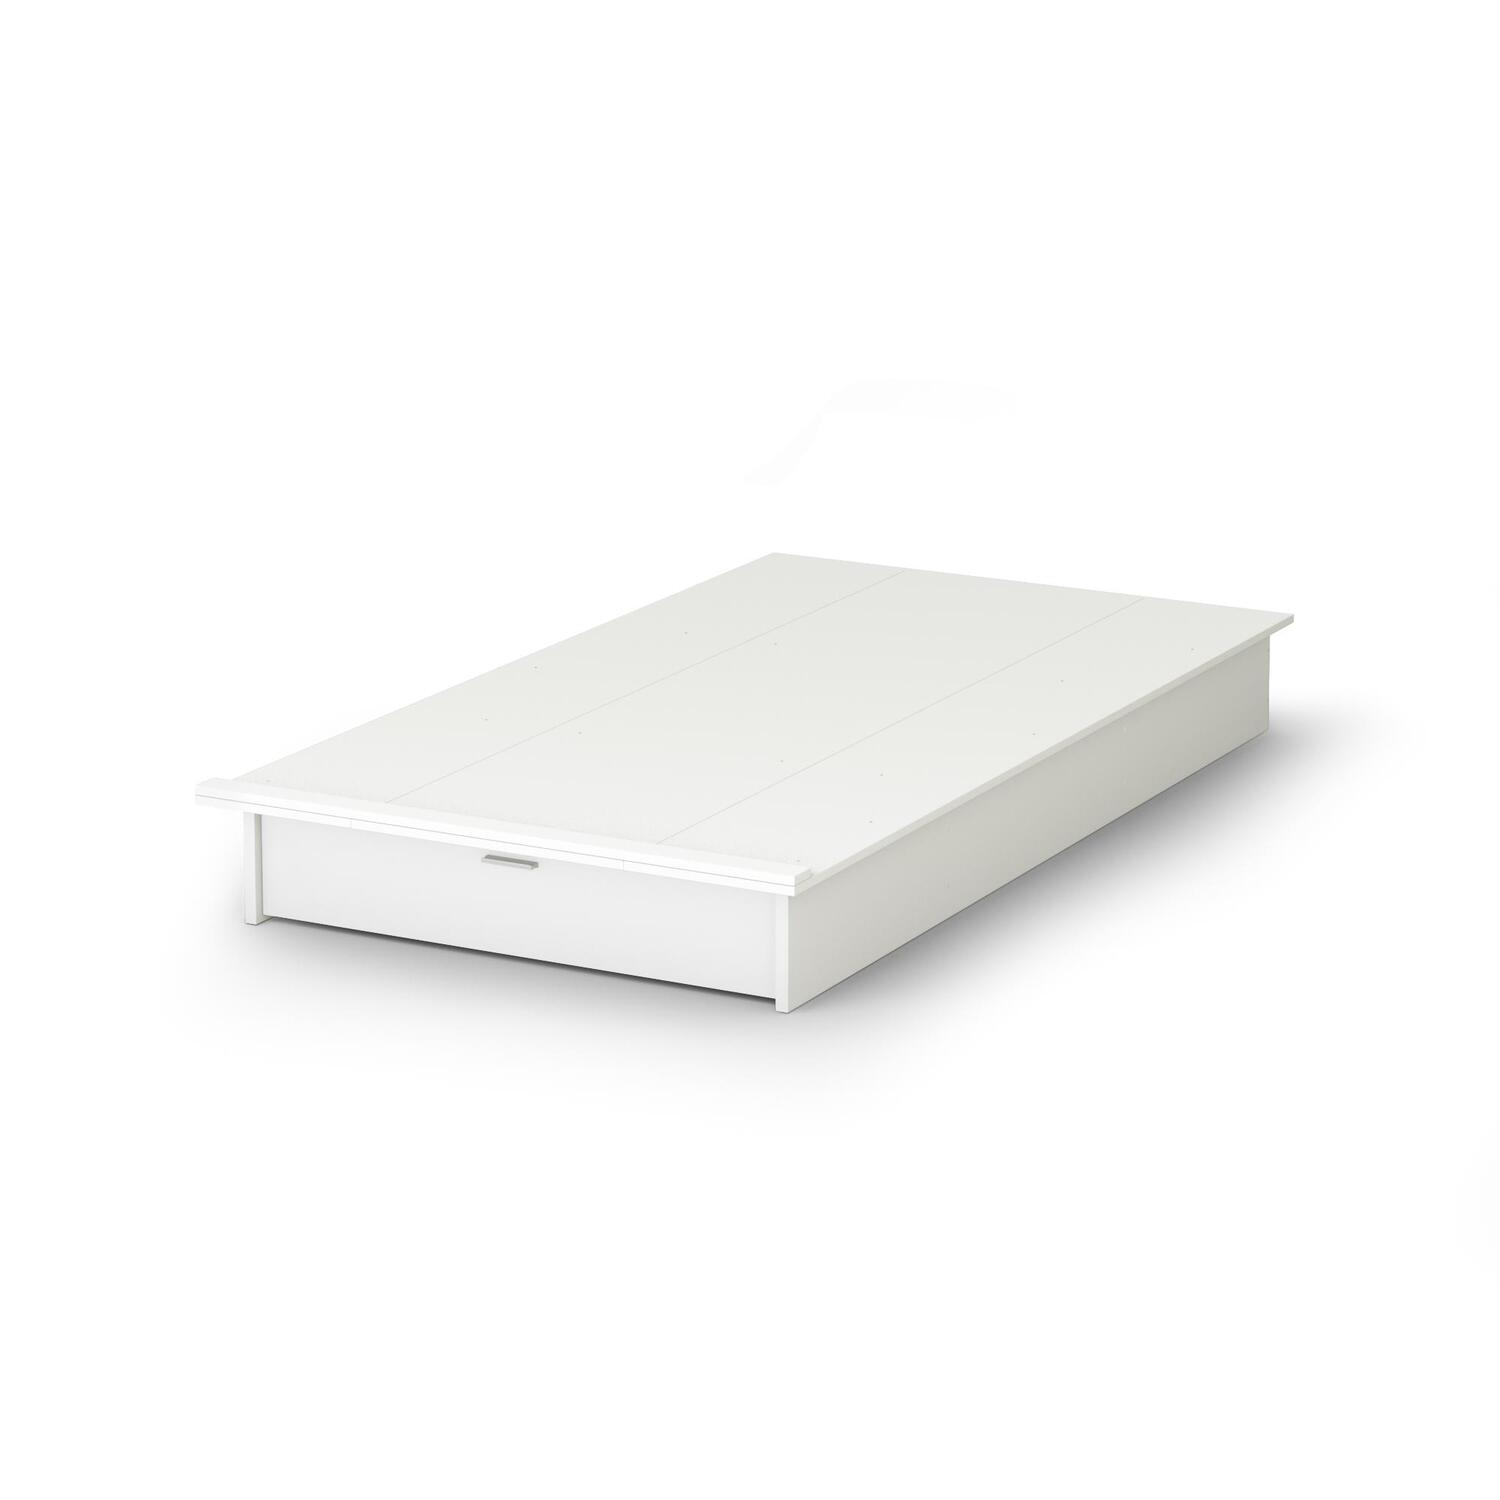 Ikea flaxa headboard reviews for Platform bed with drawers ikea